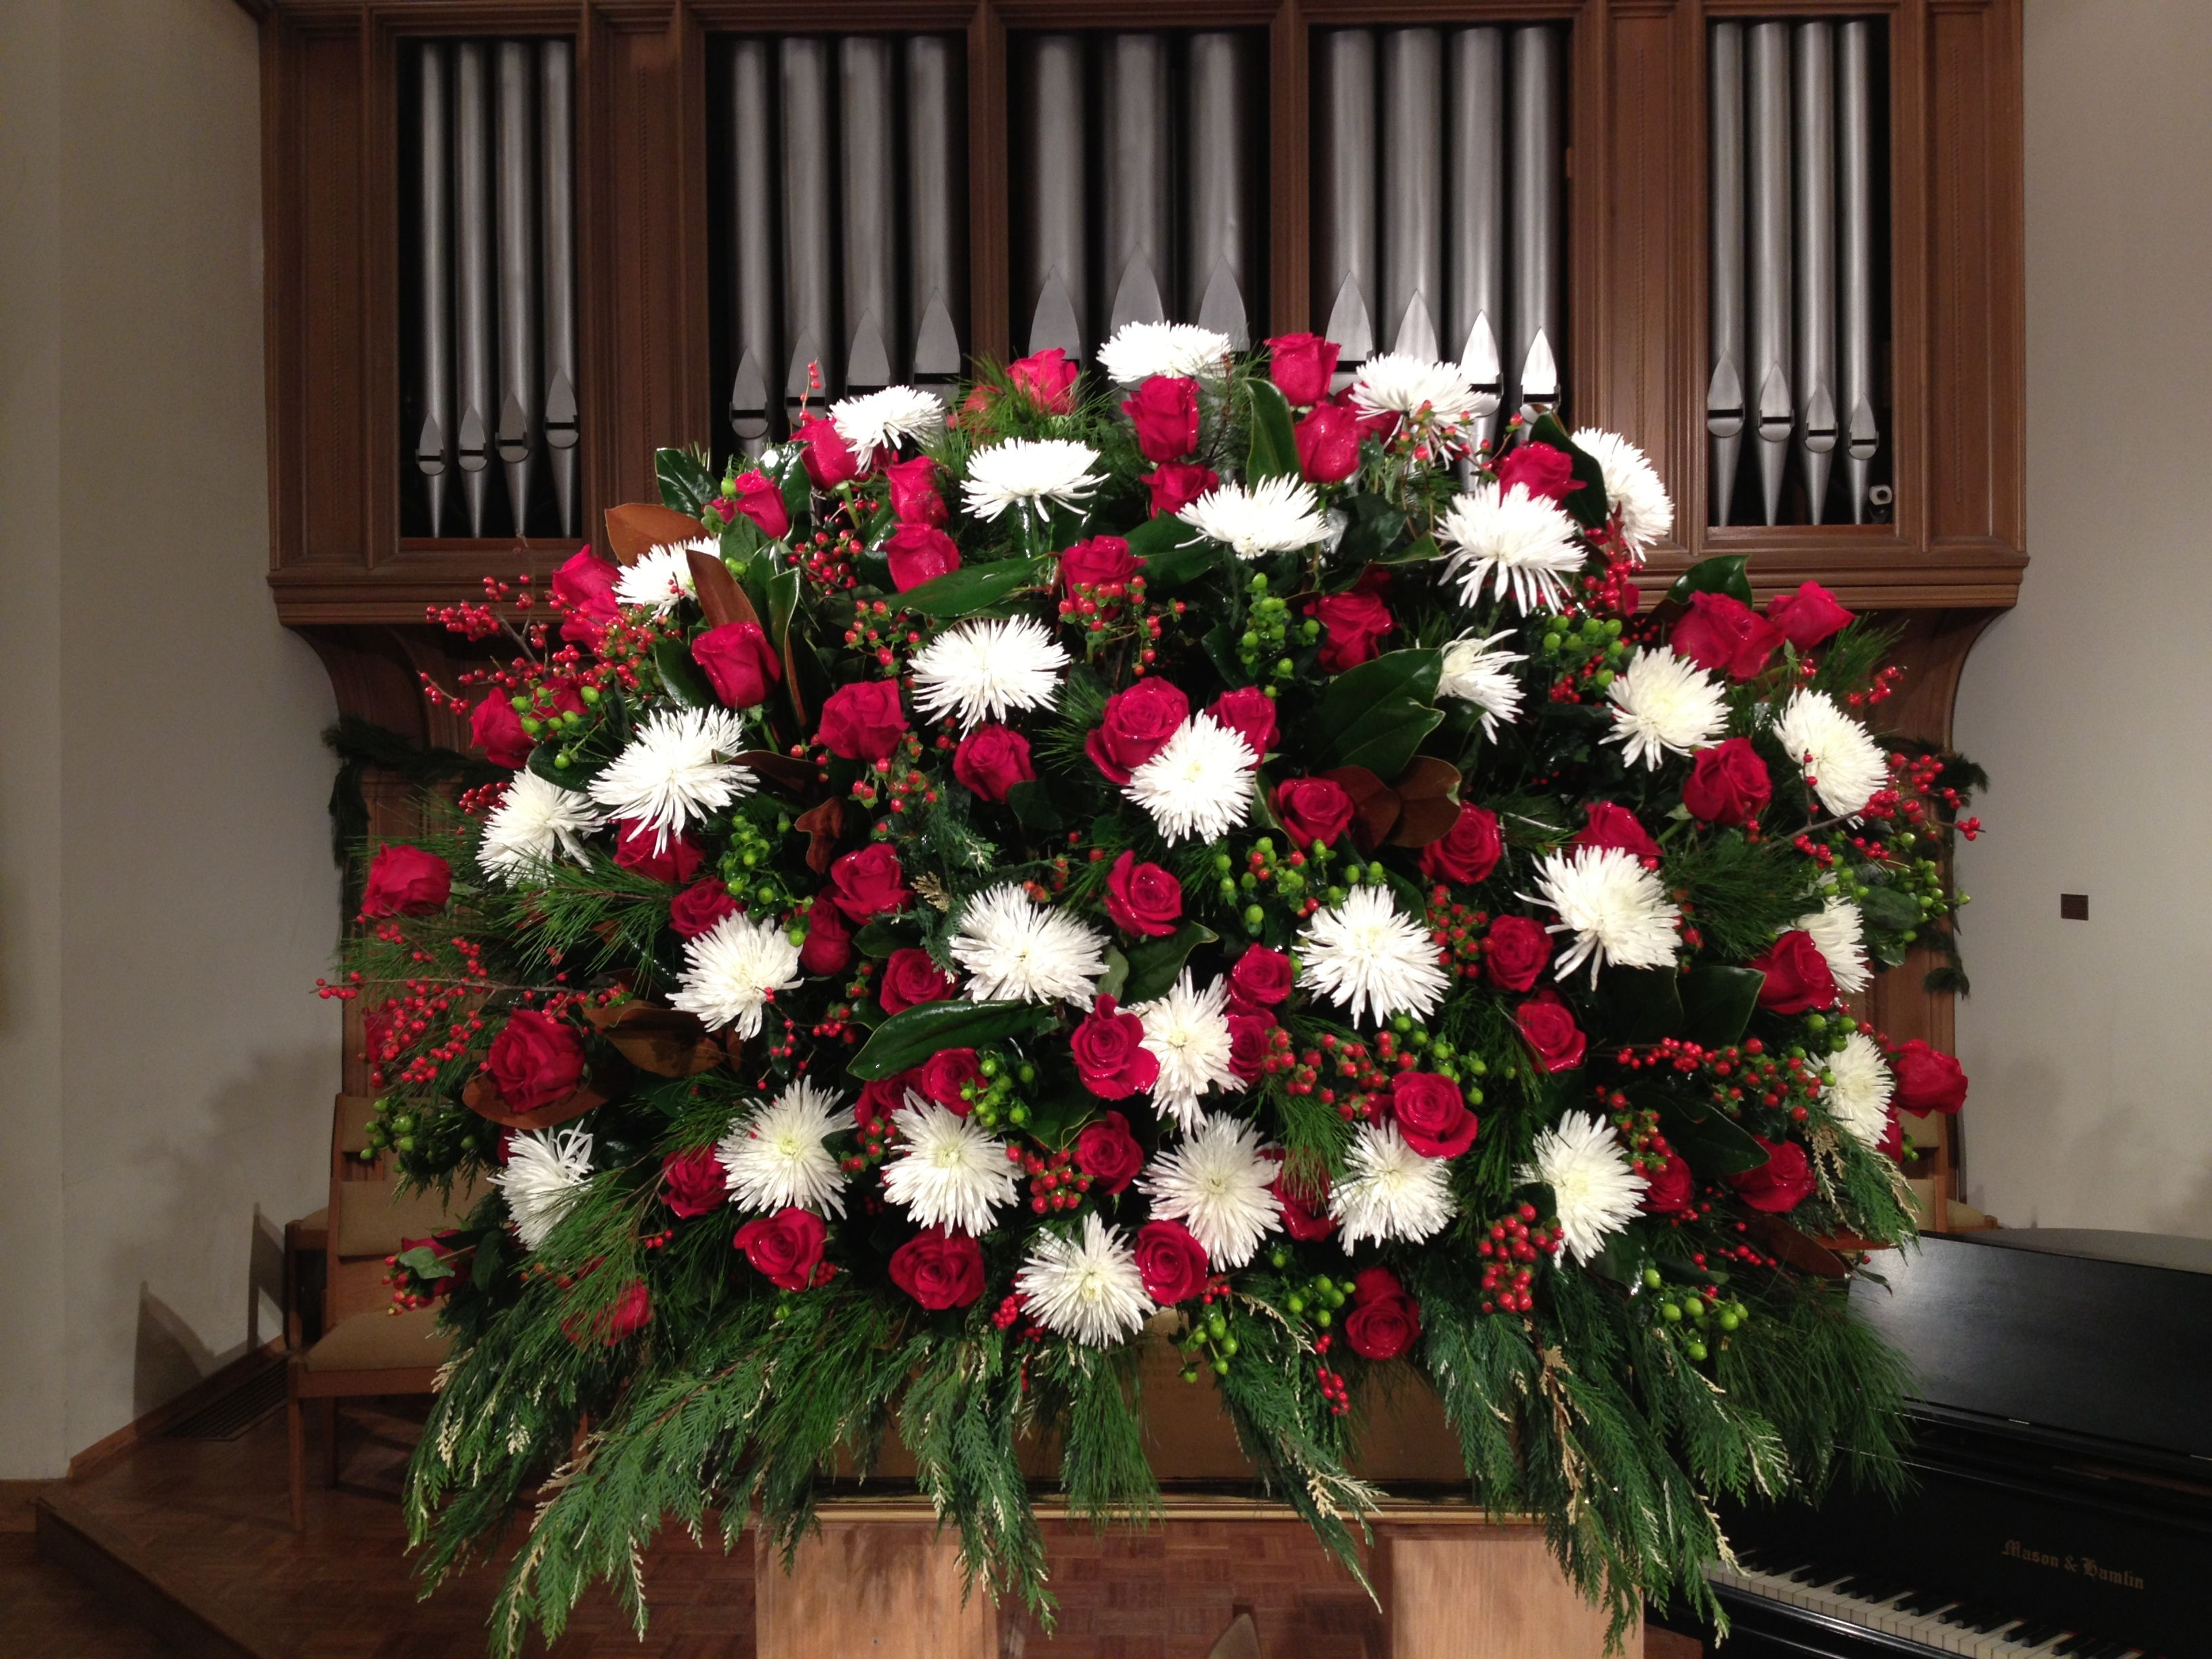 Christmas Altar White Spider Mums And Red Roses Green Hypericum Berries Church Flower Arrangements Altar Arrangement Church Flowers